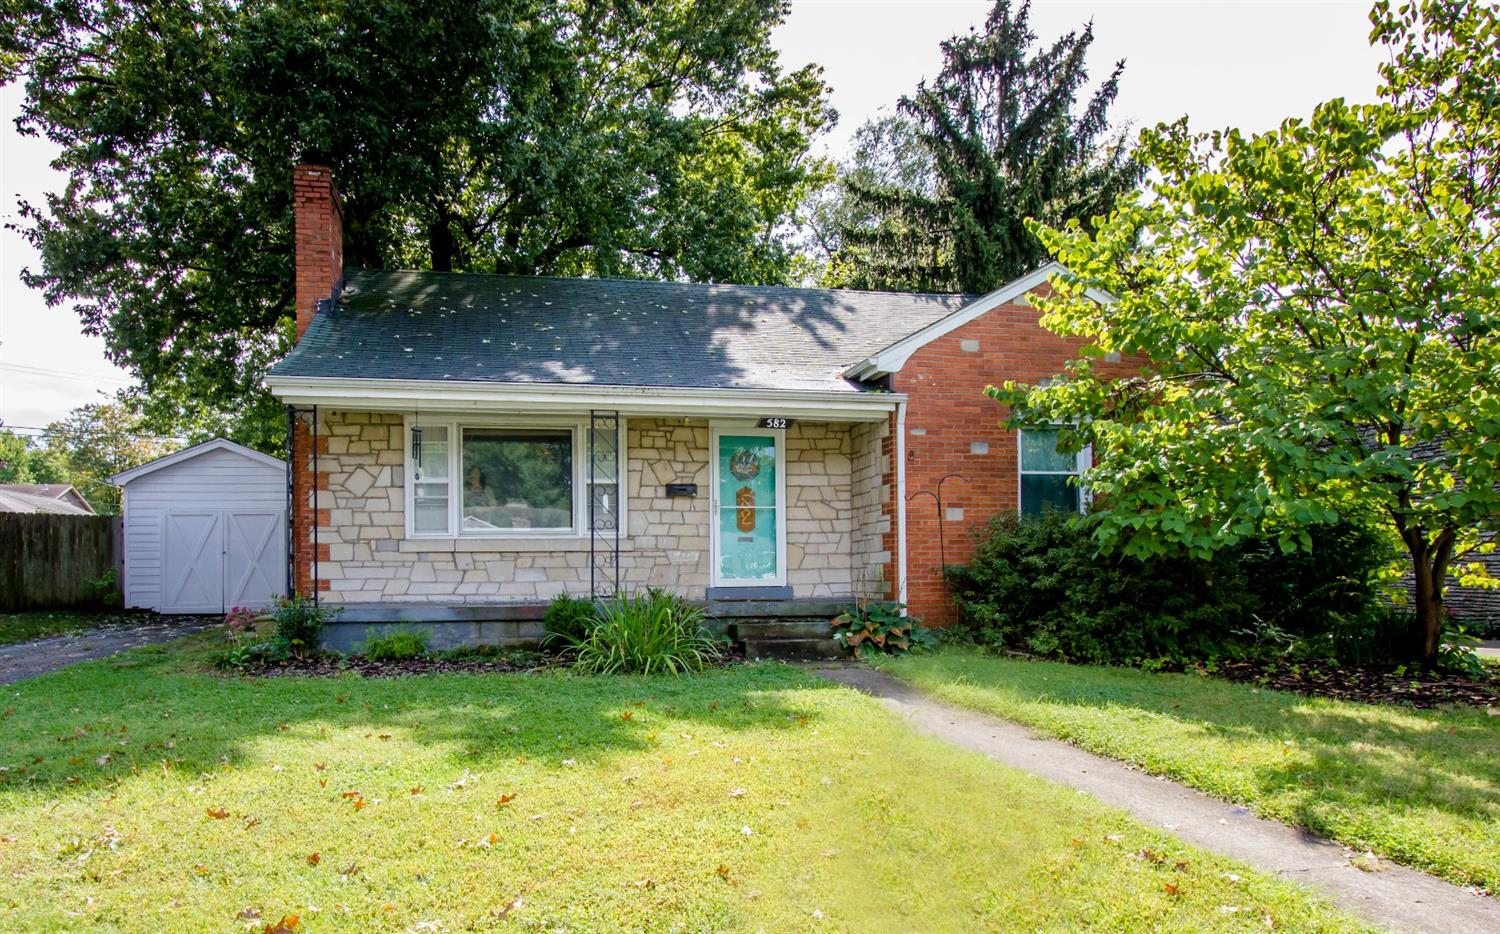 Step%20inside%20this%20charming%20home%20in%20the%20Southland%20area!%20The%20brick%20and%20cut%20stone%20curb%20appeal,%20hardwood%20floors%20and%20built-ins%20are%20perfection.%20This%203%20bedroom%20home%20is%20spacious%20downstairs%20and%20includes%20a%20large%20laundry%20area/%20mud%20room%20off%20the%20back%20entry.%20All%20plumbing%20and%20electrical%20have%20been%20updated%20by%20current%20owners.%20The%20kitchen%20has%20a%20new%20dishwasher,%20backsplash%20and%20countertops%20and%20is%20ready%20for%20you%20to%20choose%20the%20floors!%20%20The%20large,%20bright%20dining%20room%20has%20a%20built-in%20China%20cabinet%20with%20a%20top%20glass%20display%20and%20large%20storage%20area%20underneath.%20Big%20bedrooms%20and%20a%20large%20living%20room%20ensure%20plenty%20of%20space%20to%20stay%20warm%20on%20a%20fall%20evening.%20In%20the%20newly%20carpeted%20upstairs%20you%20will%20find%20another%20bedroom%20and%20a%20bonus%20room%20that%20could%20easily%20be%20a%204th%20bedroom.%20The%20outdoor%20space%20is%20amazing,%20too!%20The%20backyard%20is%20quiet%20and%20shaded,%20while%20the%20front%20porch%20is%20the%20perfect%20place%20to%20sit%20and%20enjoy%20time%20at%20your%20new%20home!%20Home%20warranty%20included%20for%20the%20new%20owners!